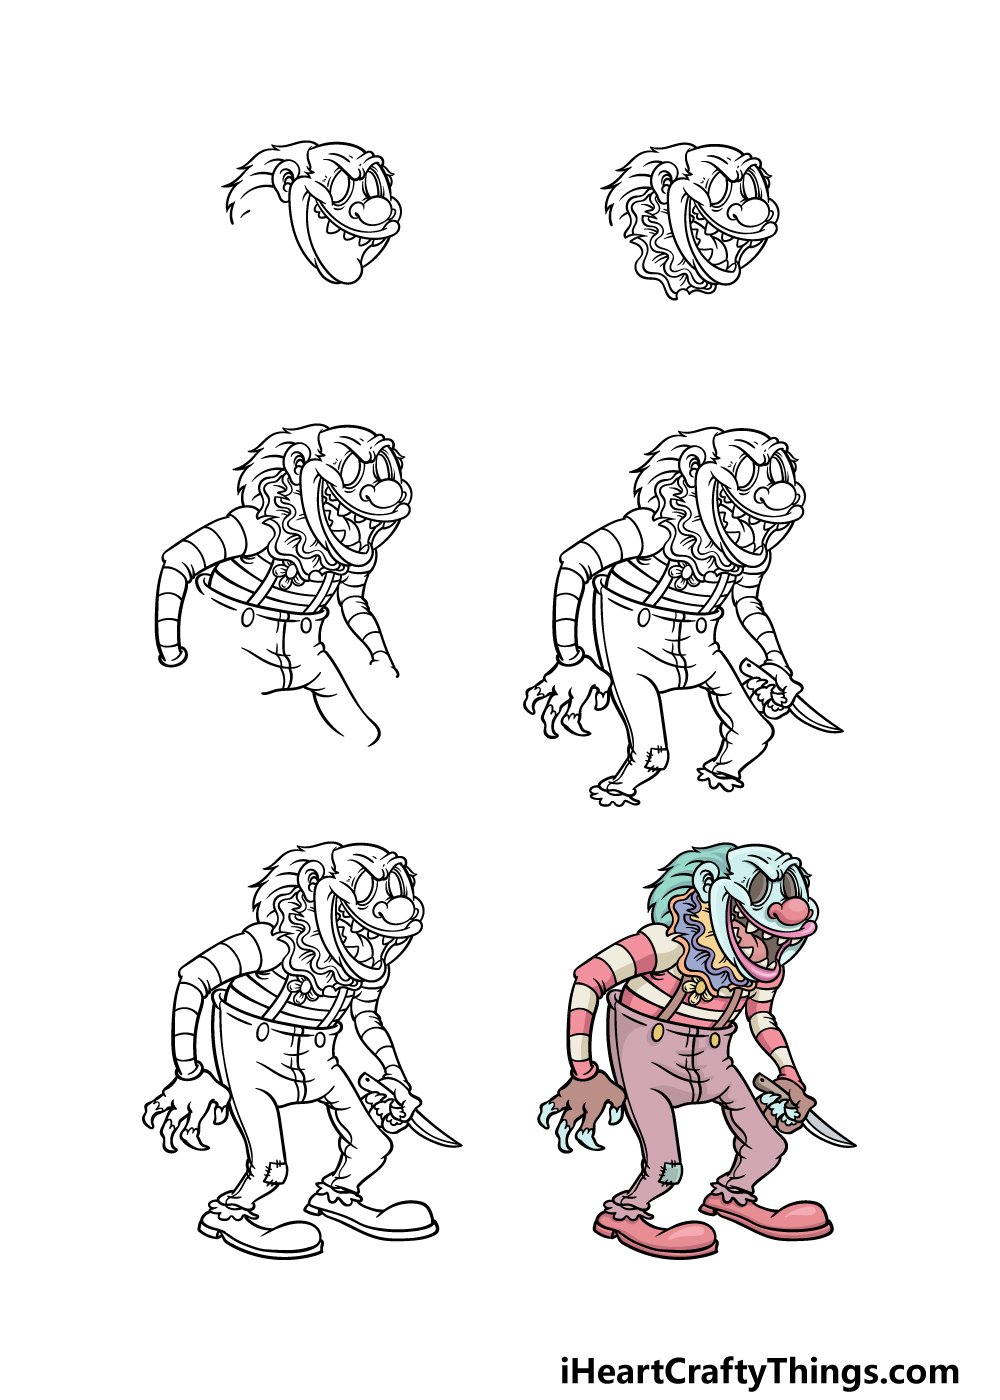 how to draw a scary clown in 6 steps